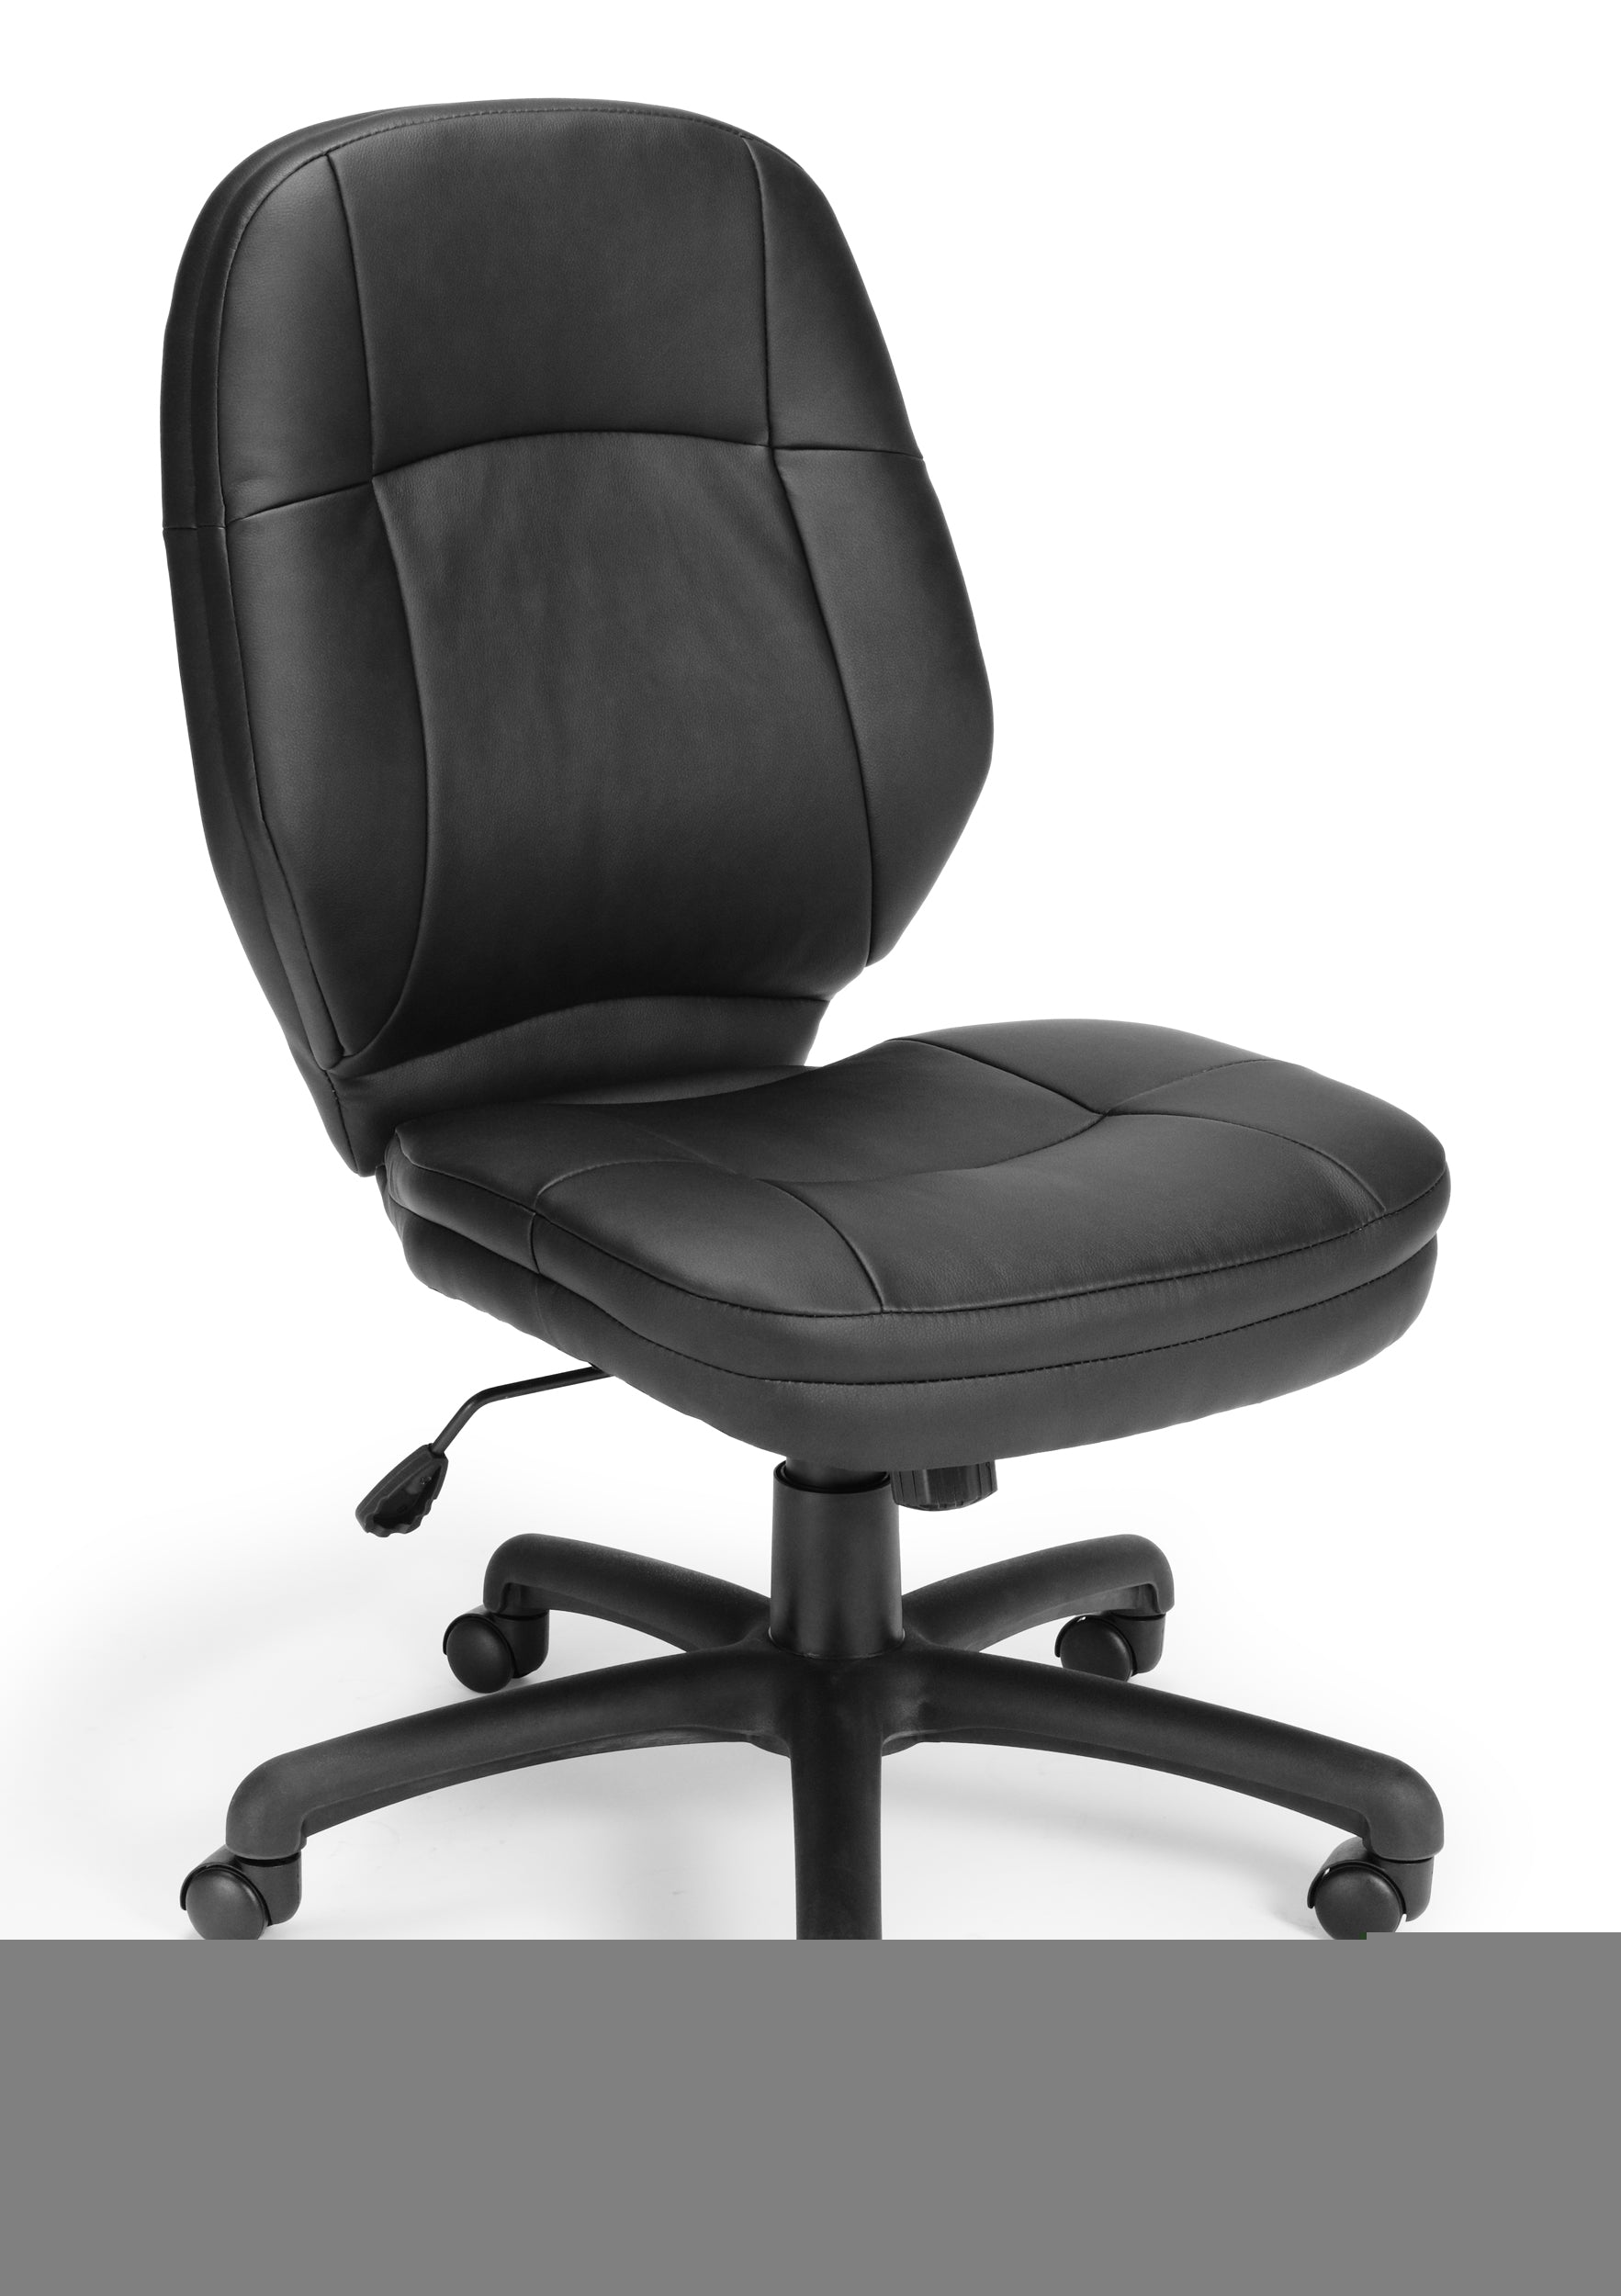 521-LX Stimulus Series Leatherette Executive Mid-Back Armless Chair